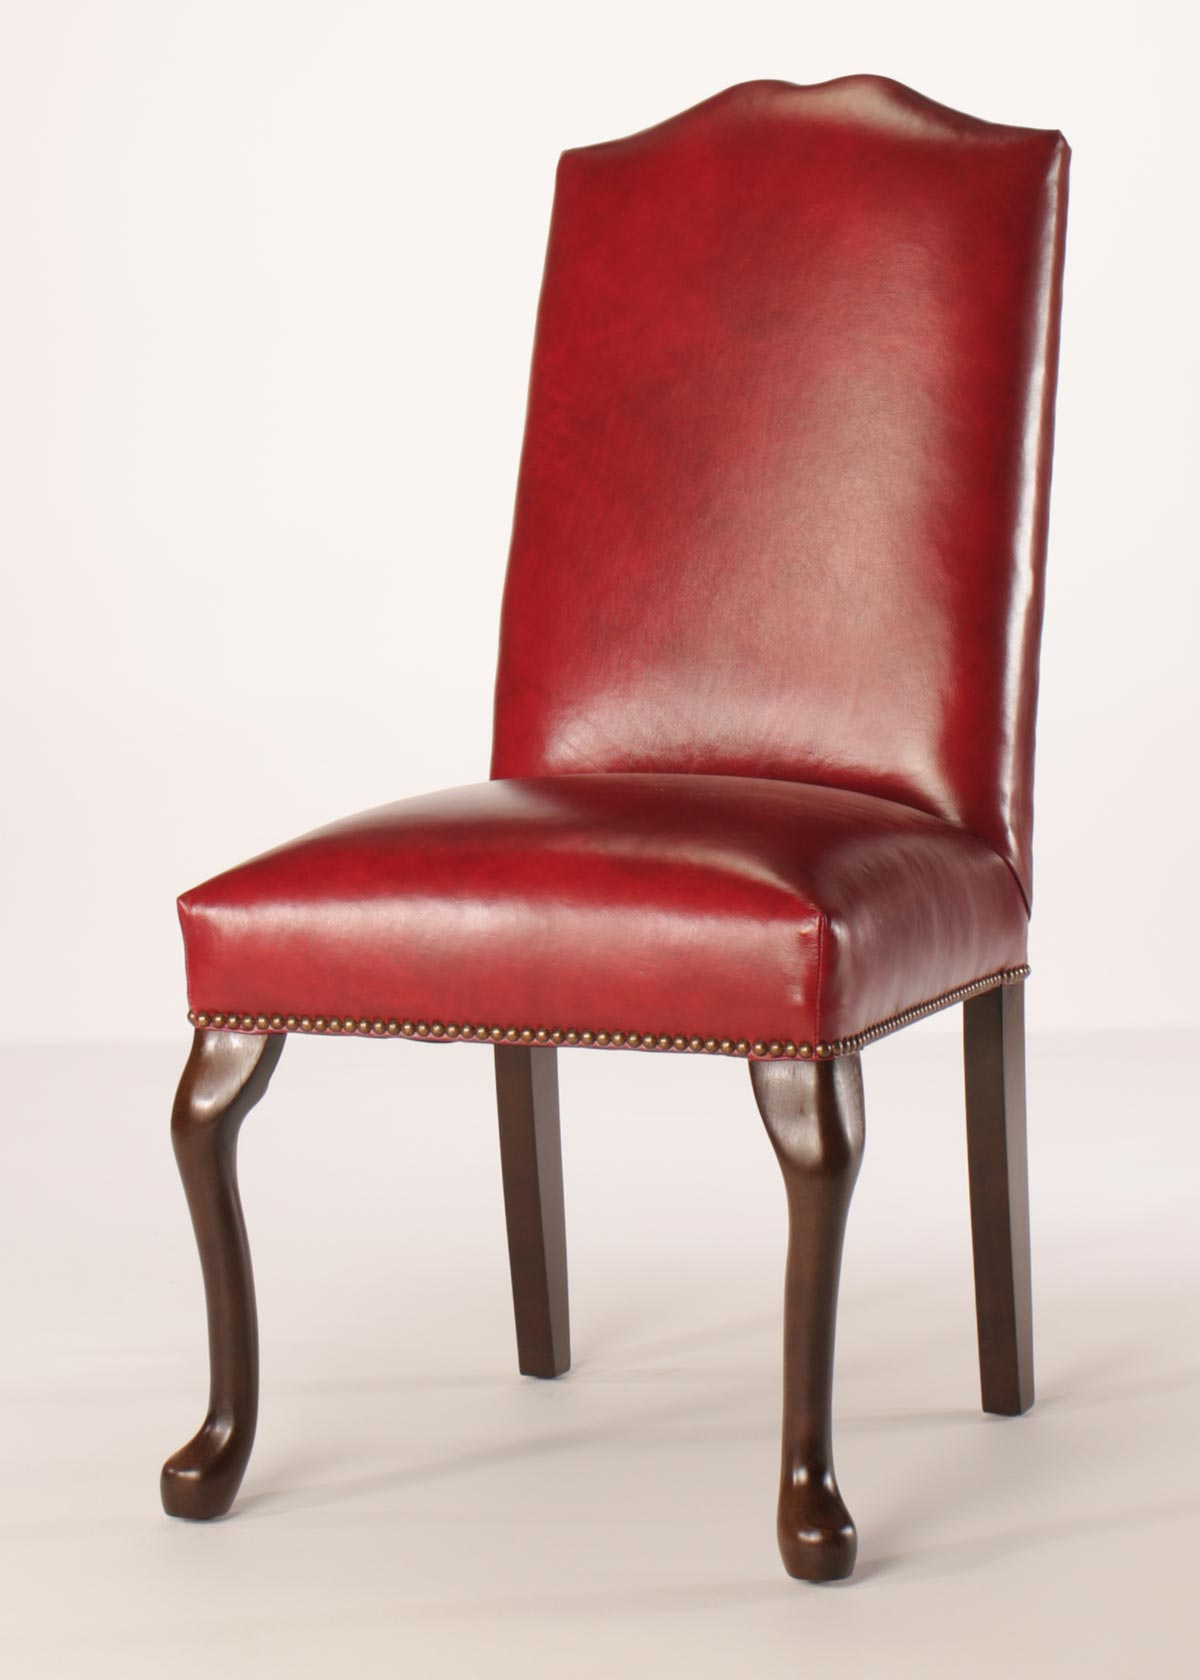 Dining Chairs Split Camel Back Queen Anne Dining Chair With Nailhead Trim